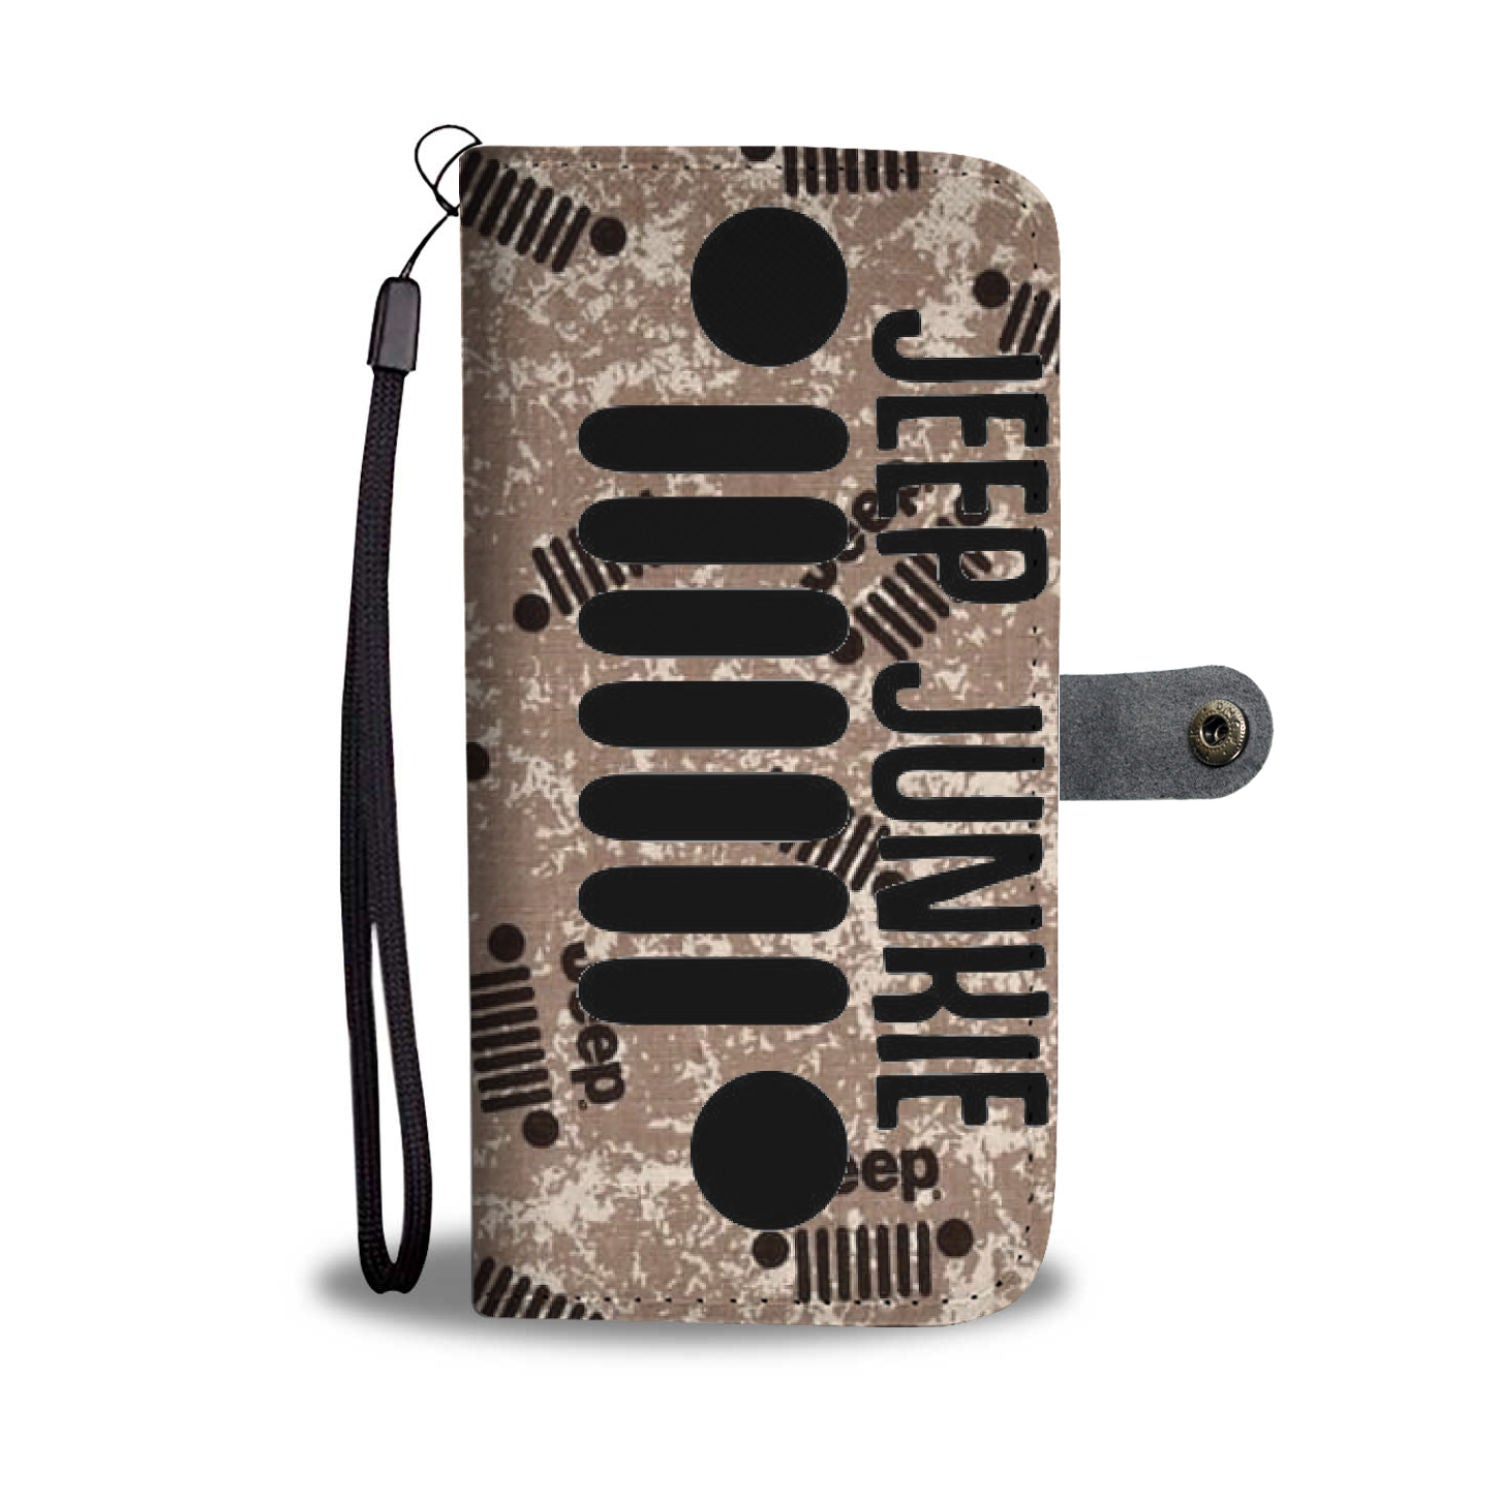 Jeep phone case for wrangler and cherokee junkie